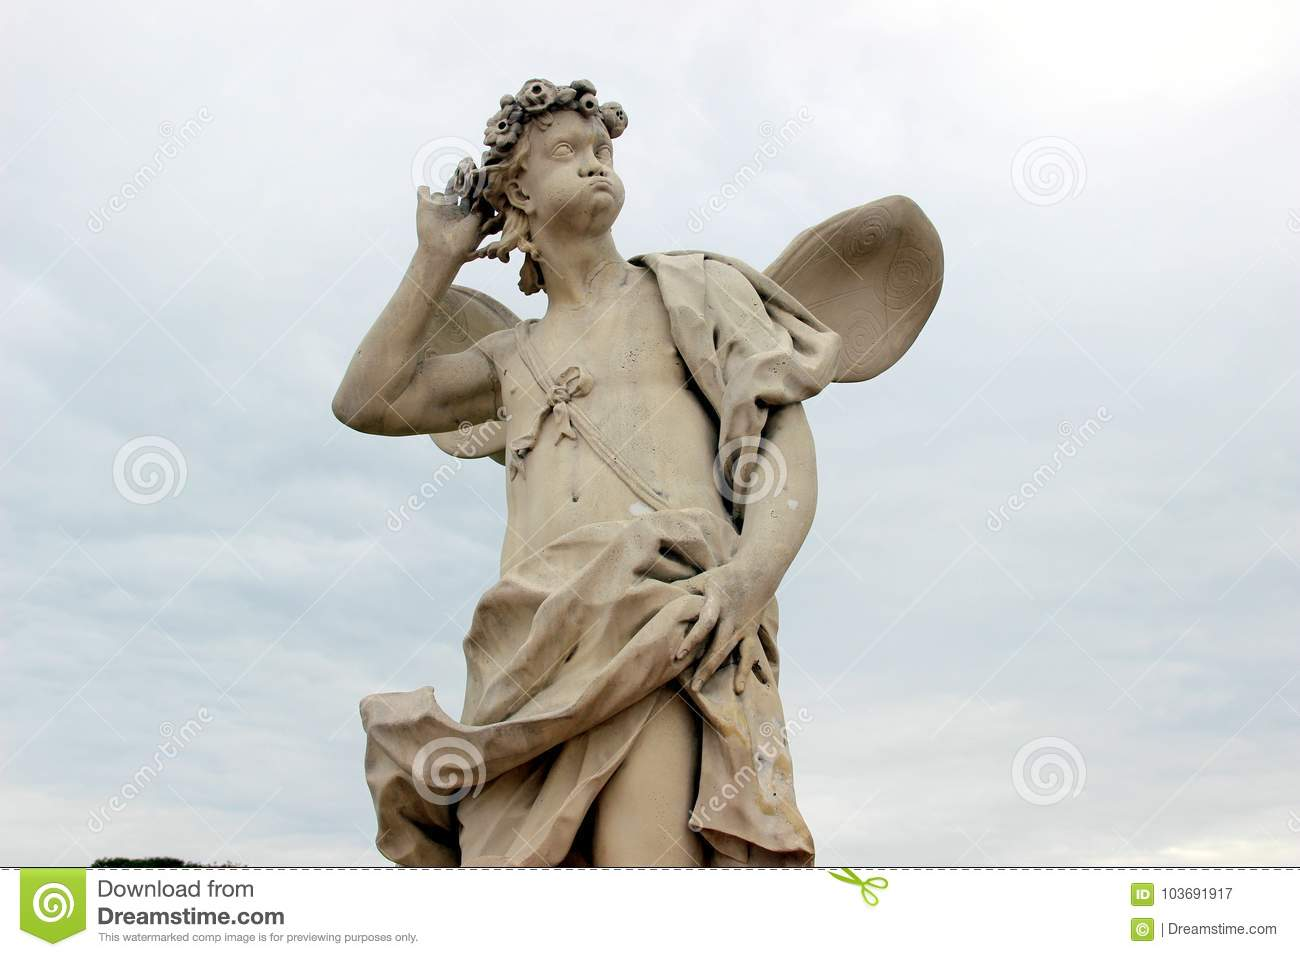 Sculpture of an important cupid